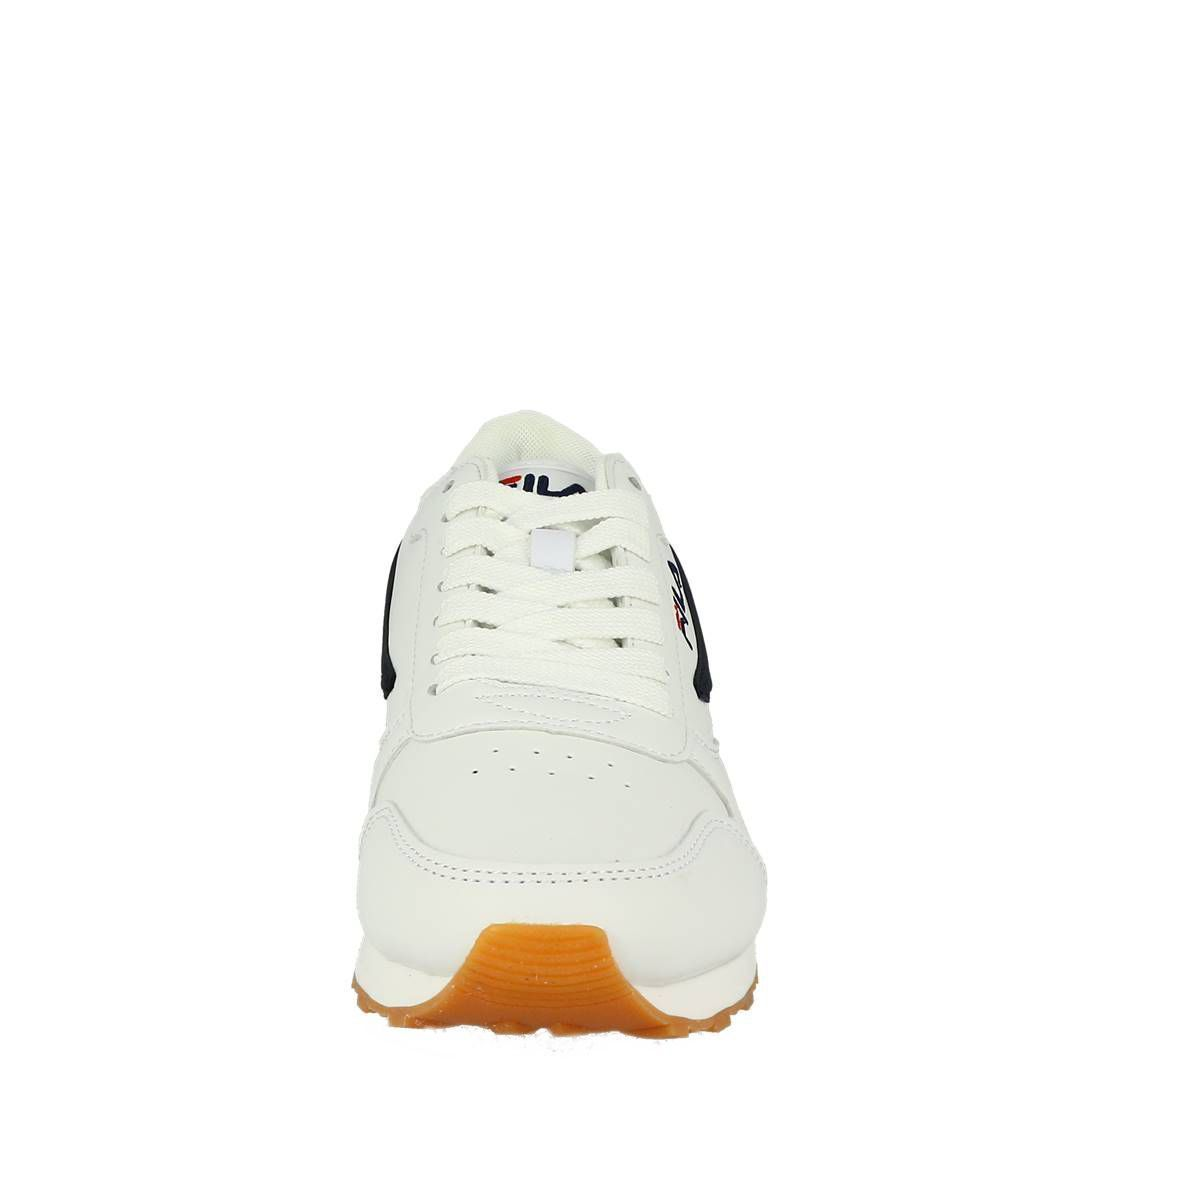 Fila homme orbit low blanc1705201_4